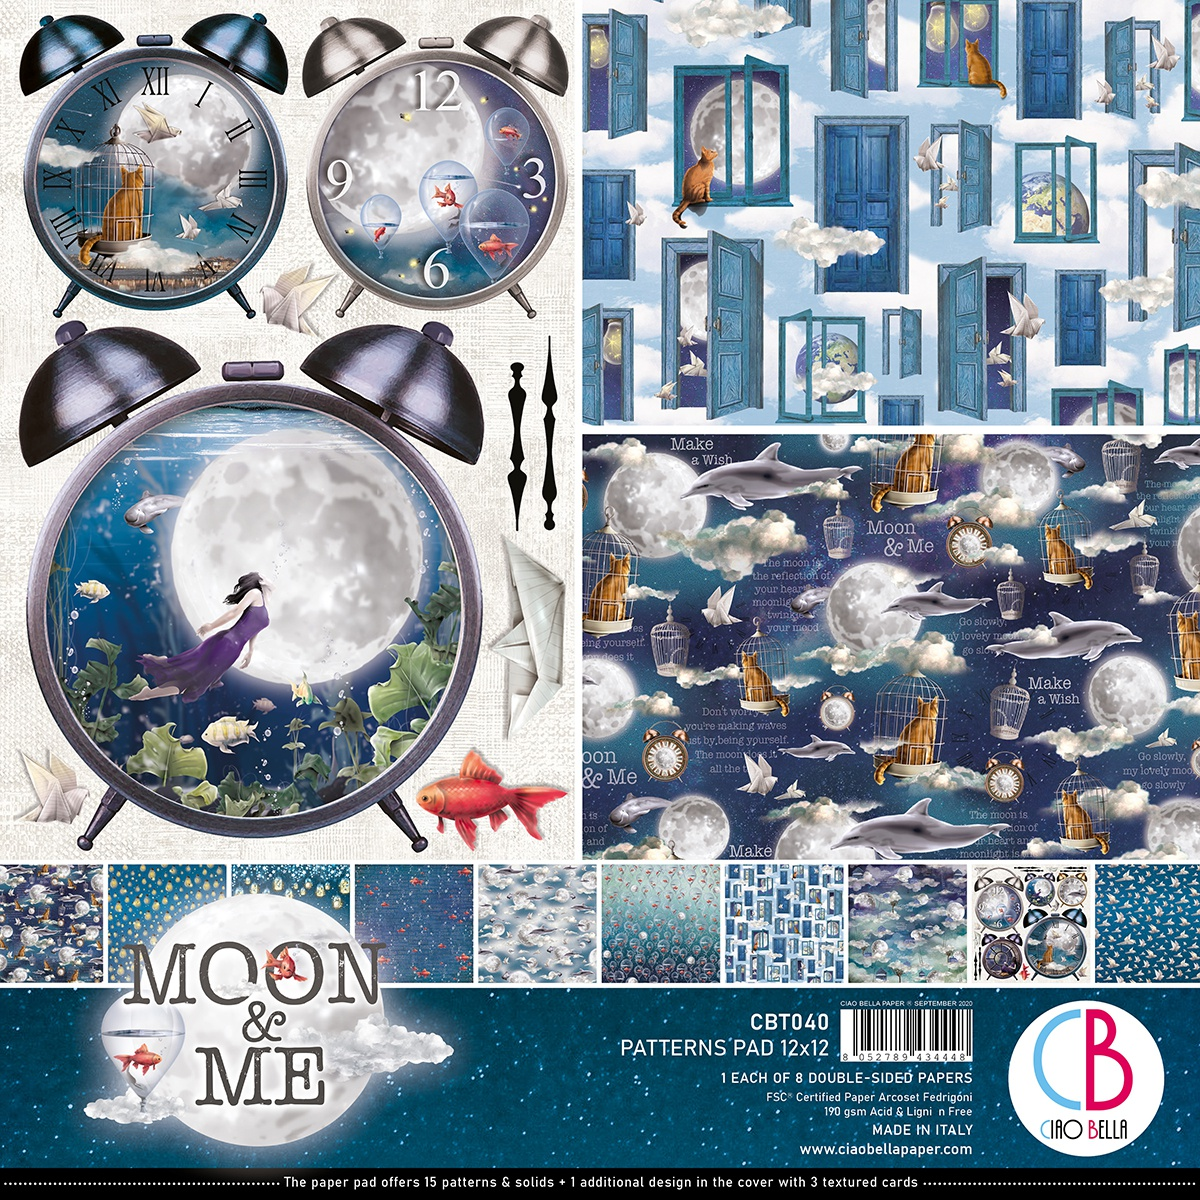 Ciao Bella Double-Sided Paper Pack 90lb 12X12 8/Pkg-Moon & Me, 8 Designs/1 Each